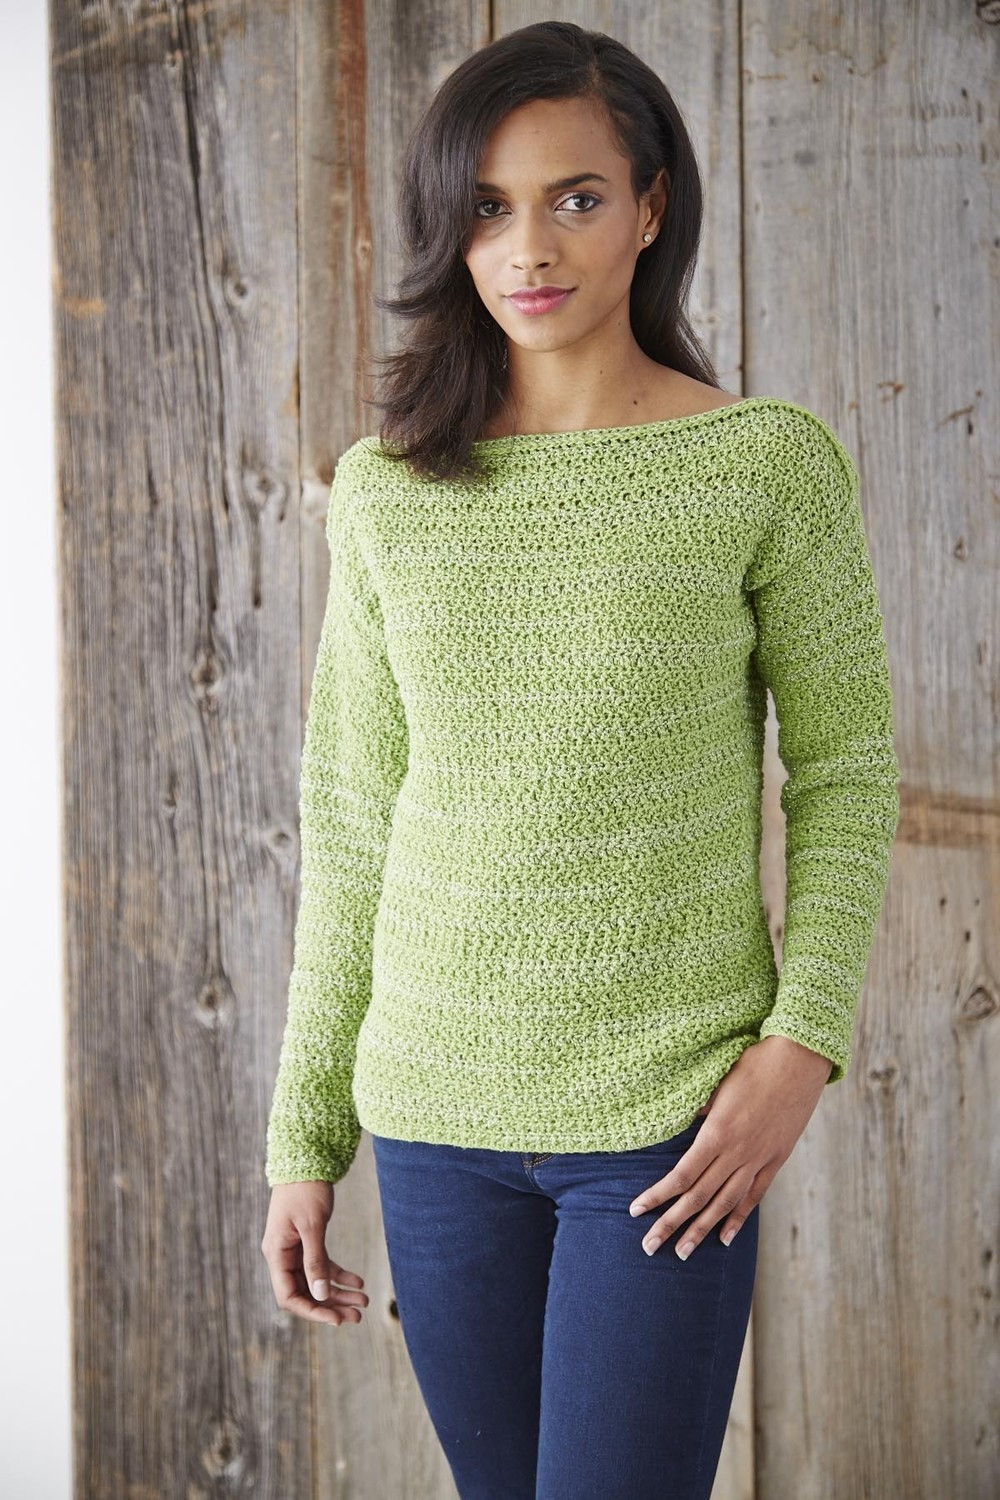 Crochet Sweater Pattern Free Inspirational Boat Neck Pullover Sweater Of Unique 50 Images Crochet Sweater Pattern Free